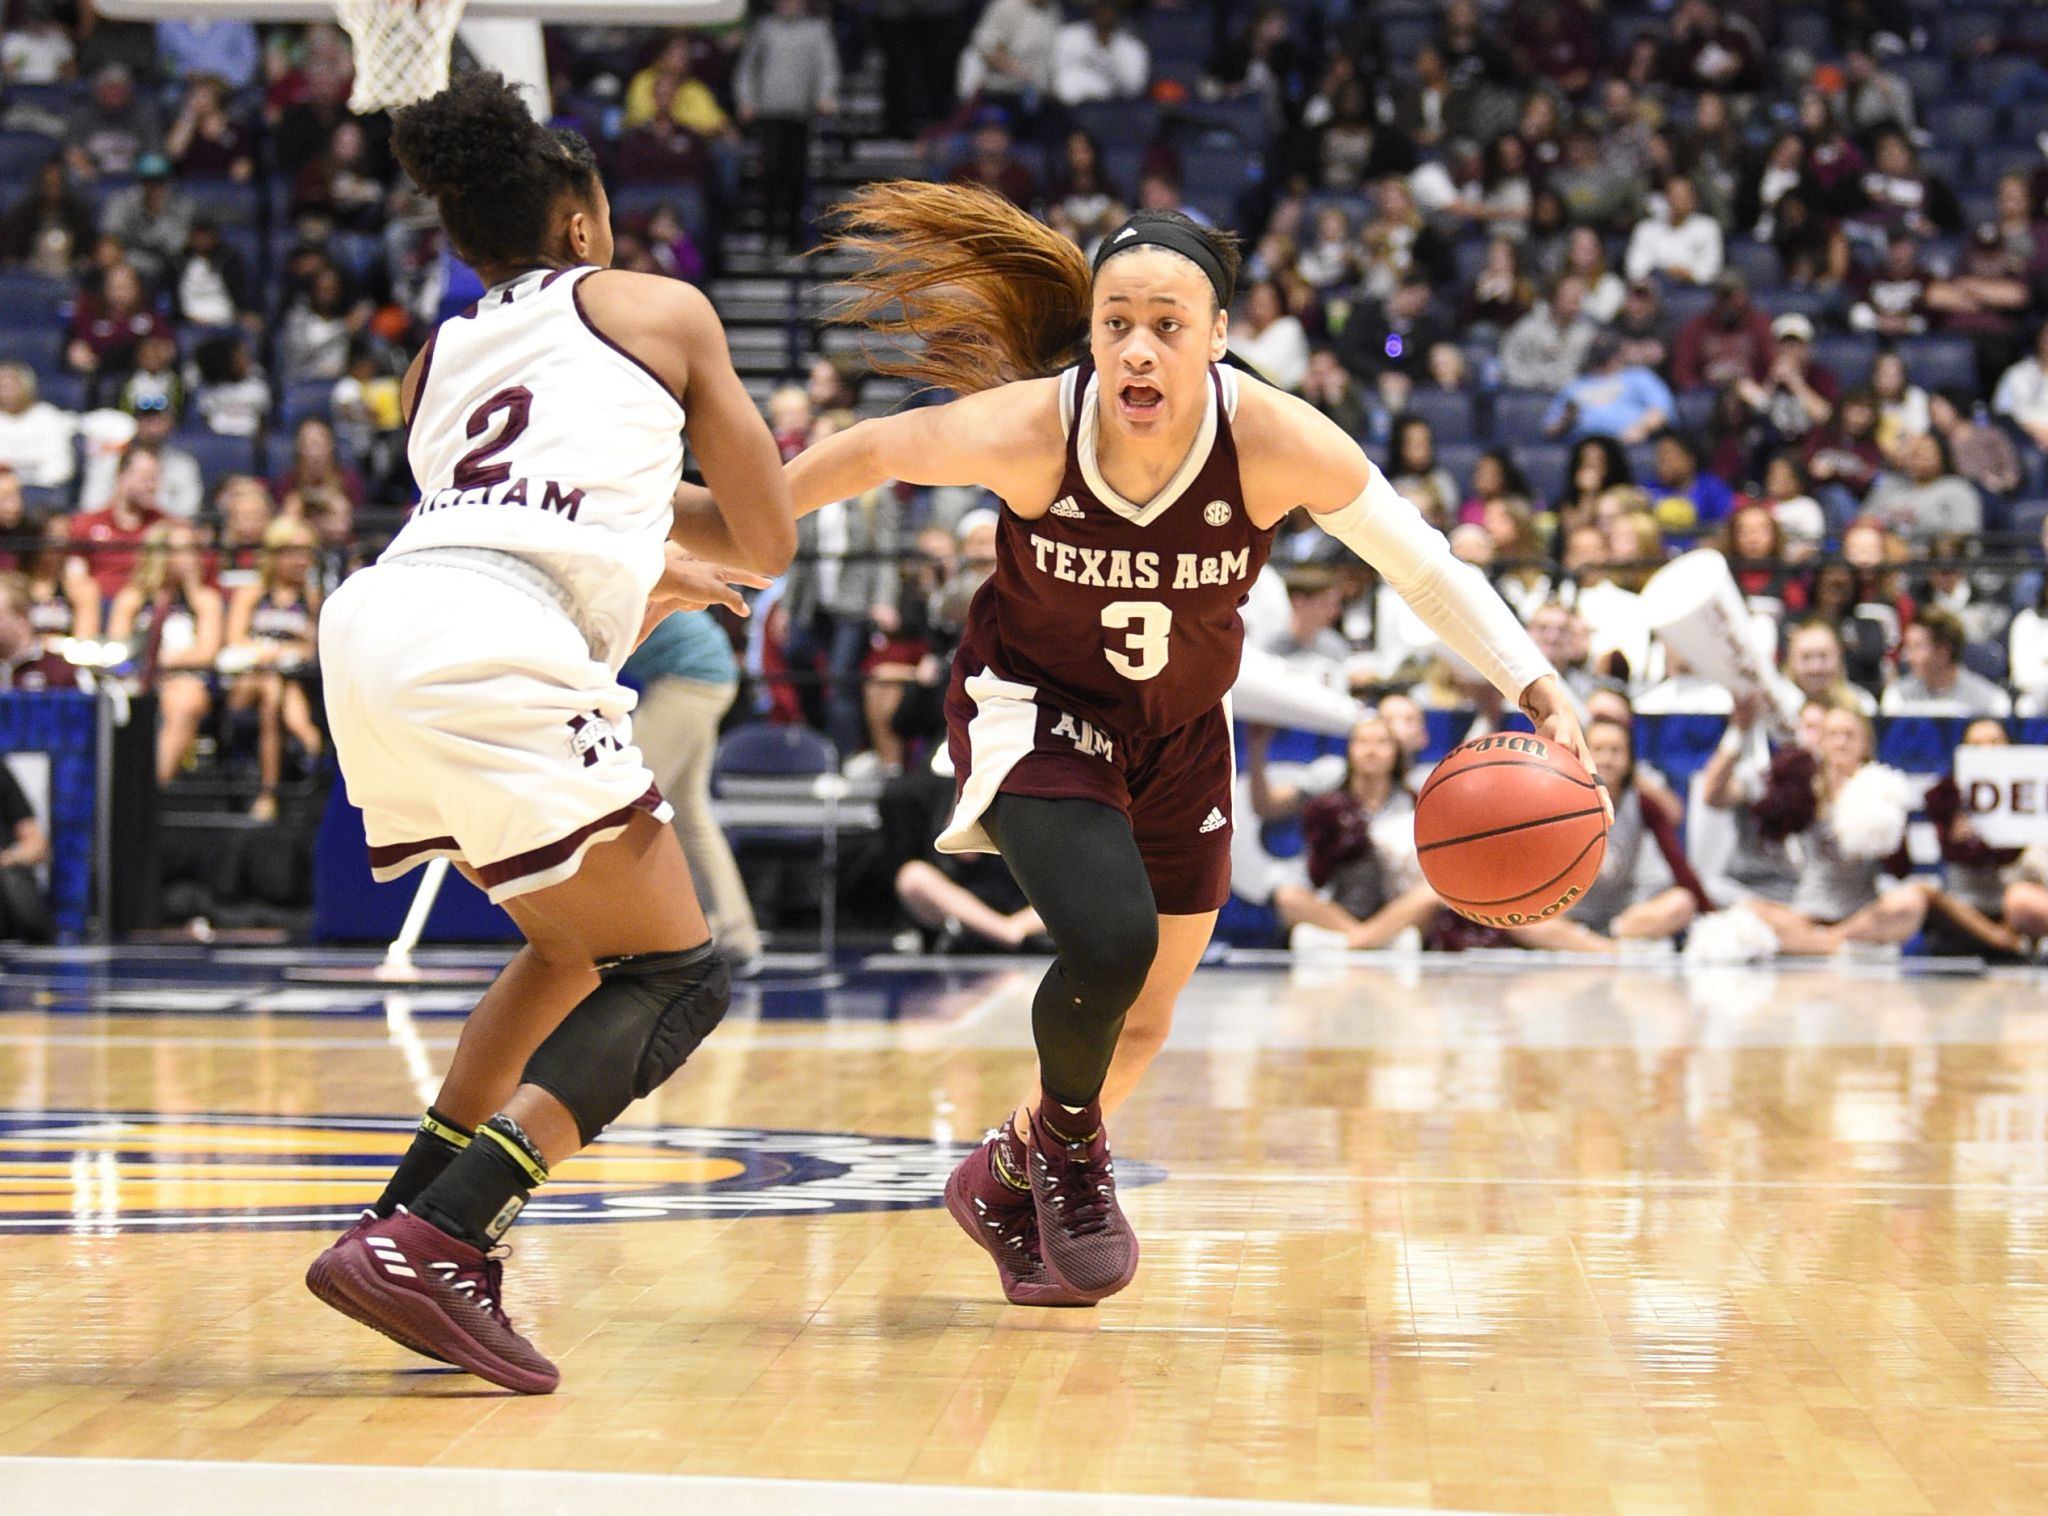 State of Texas well represented in Women's NCAA Tournament